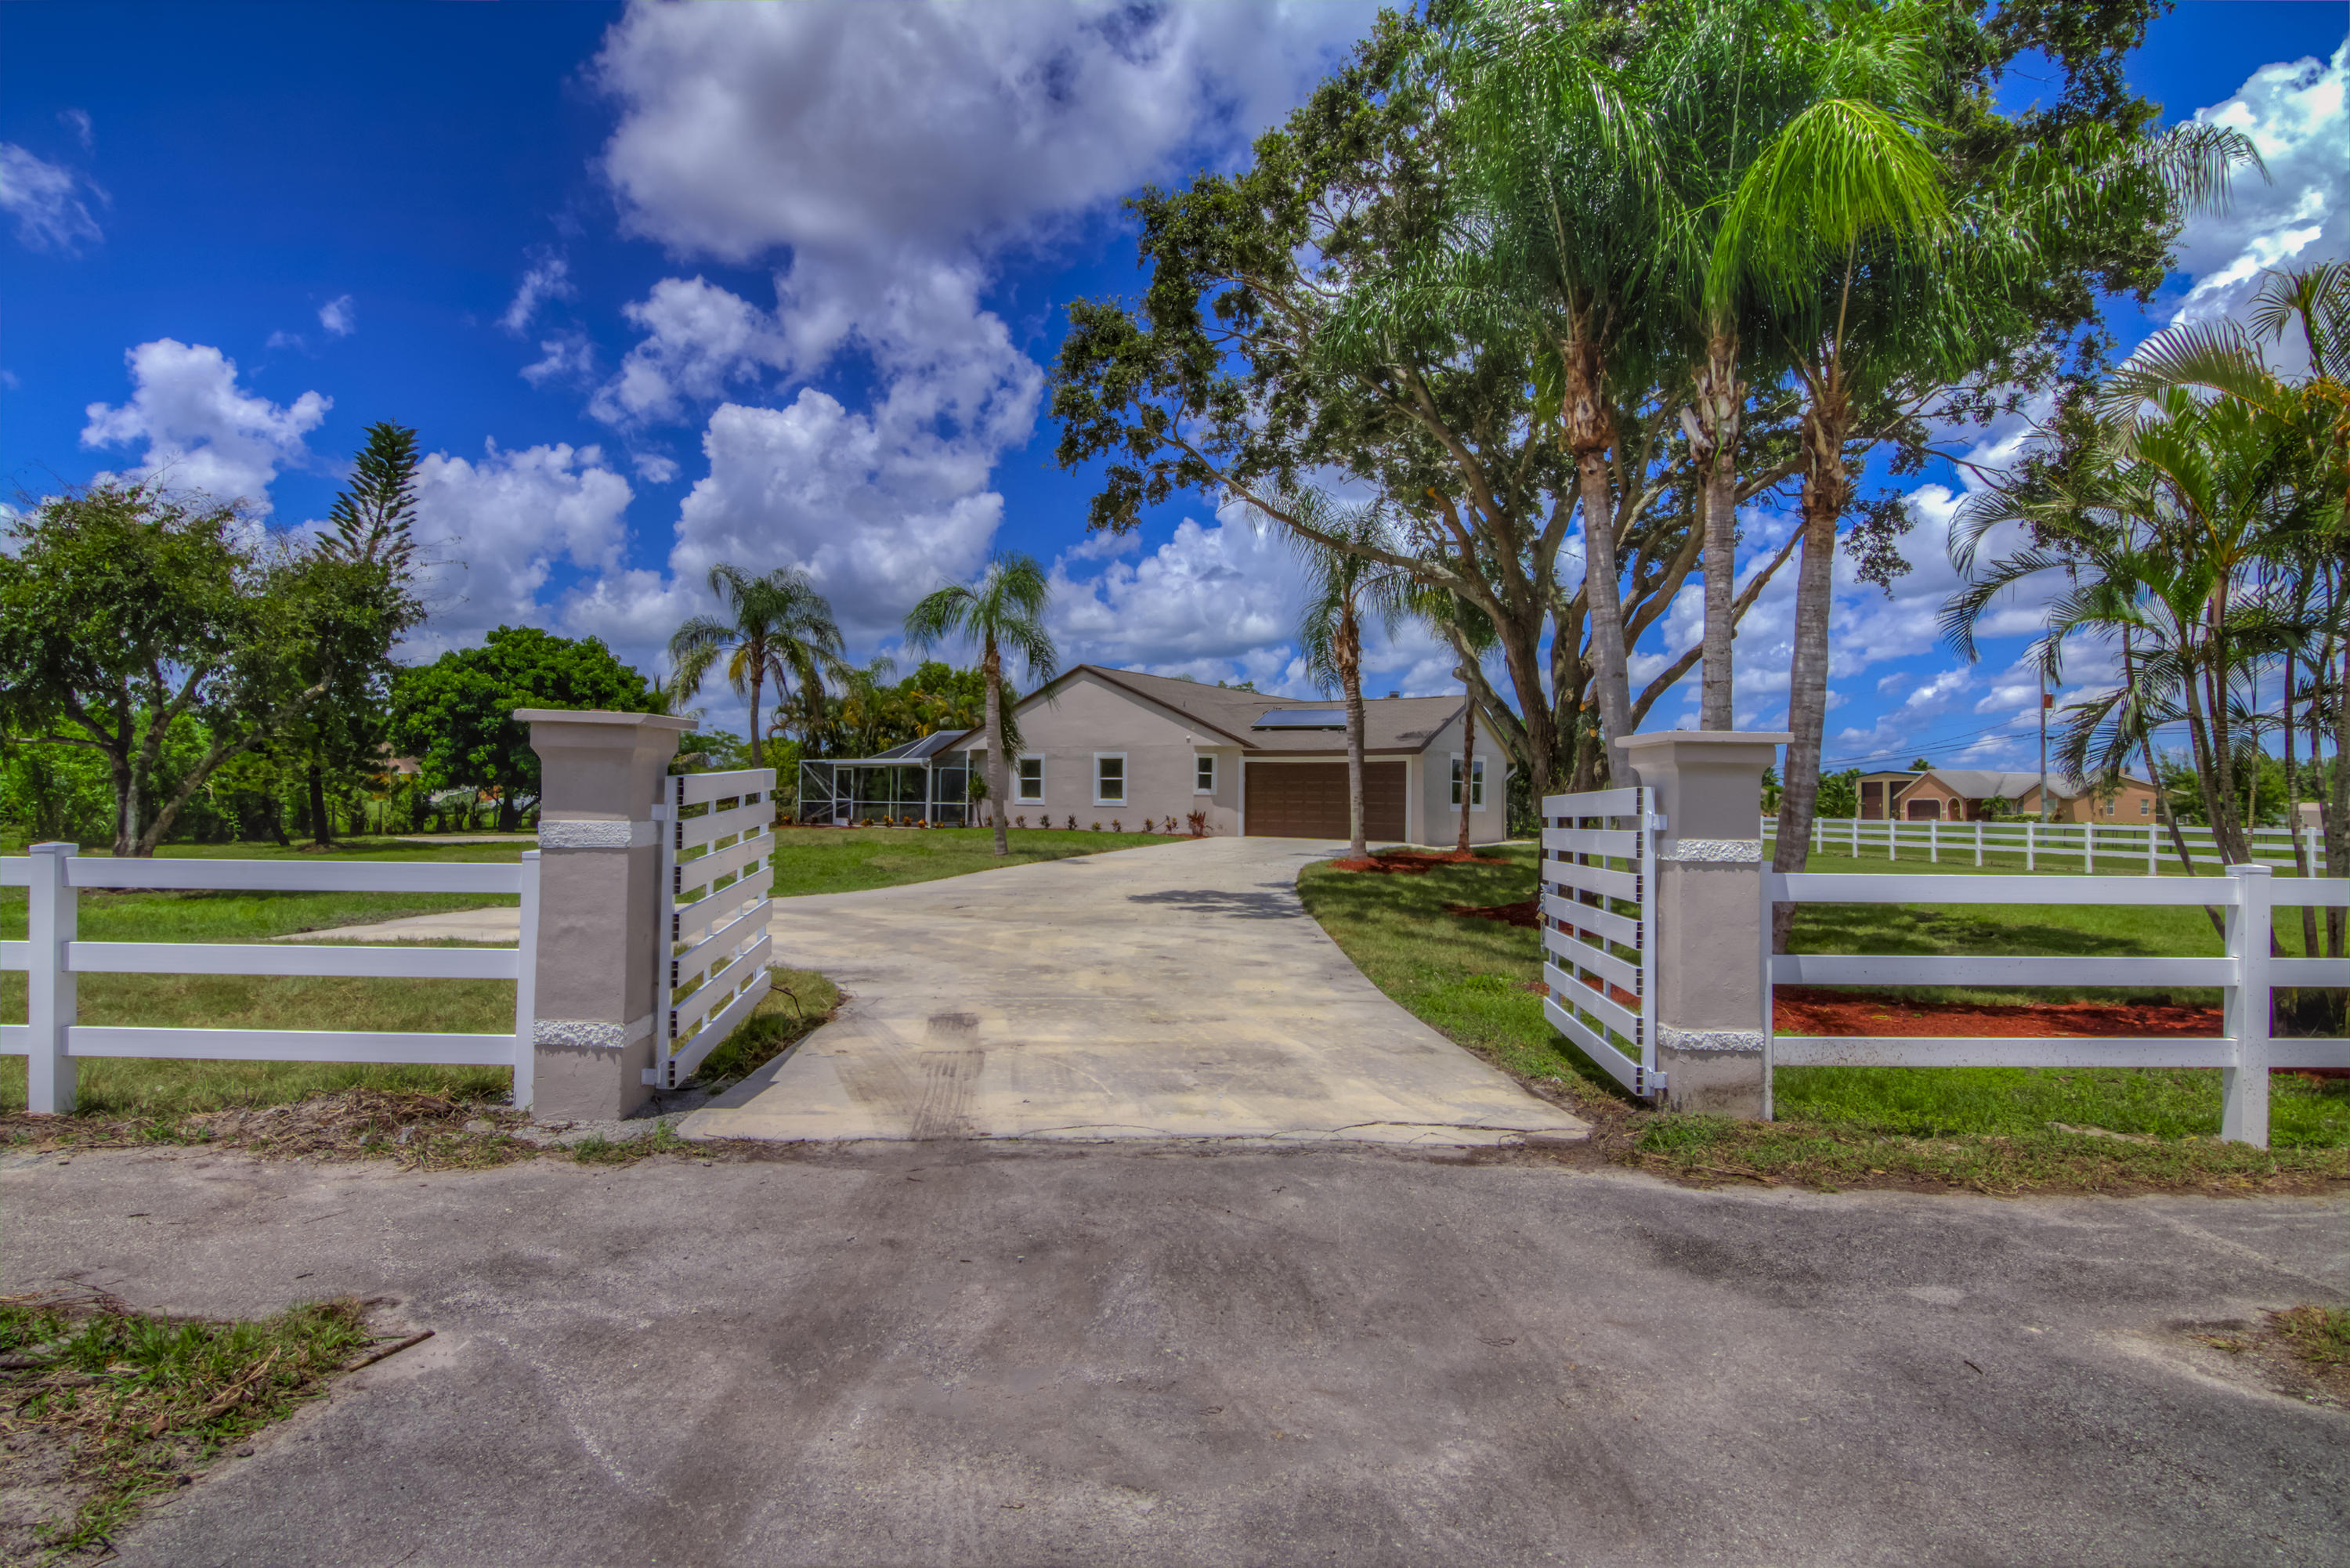 Home for sale in SEE TAX Loxahatchee Florida